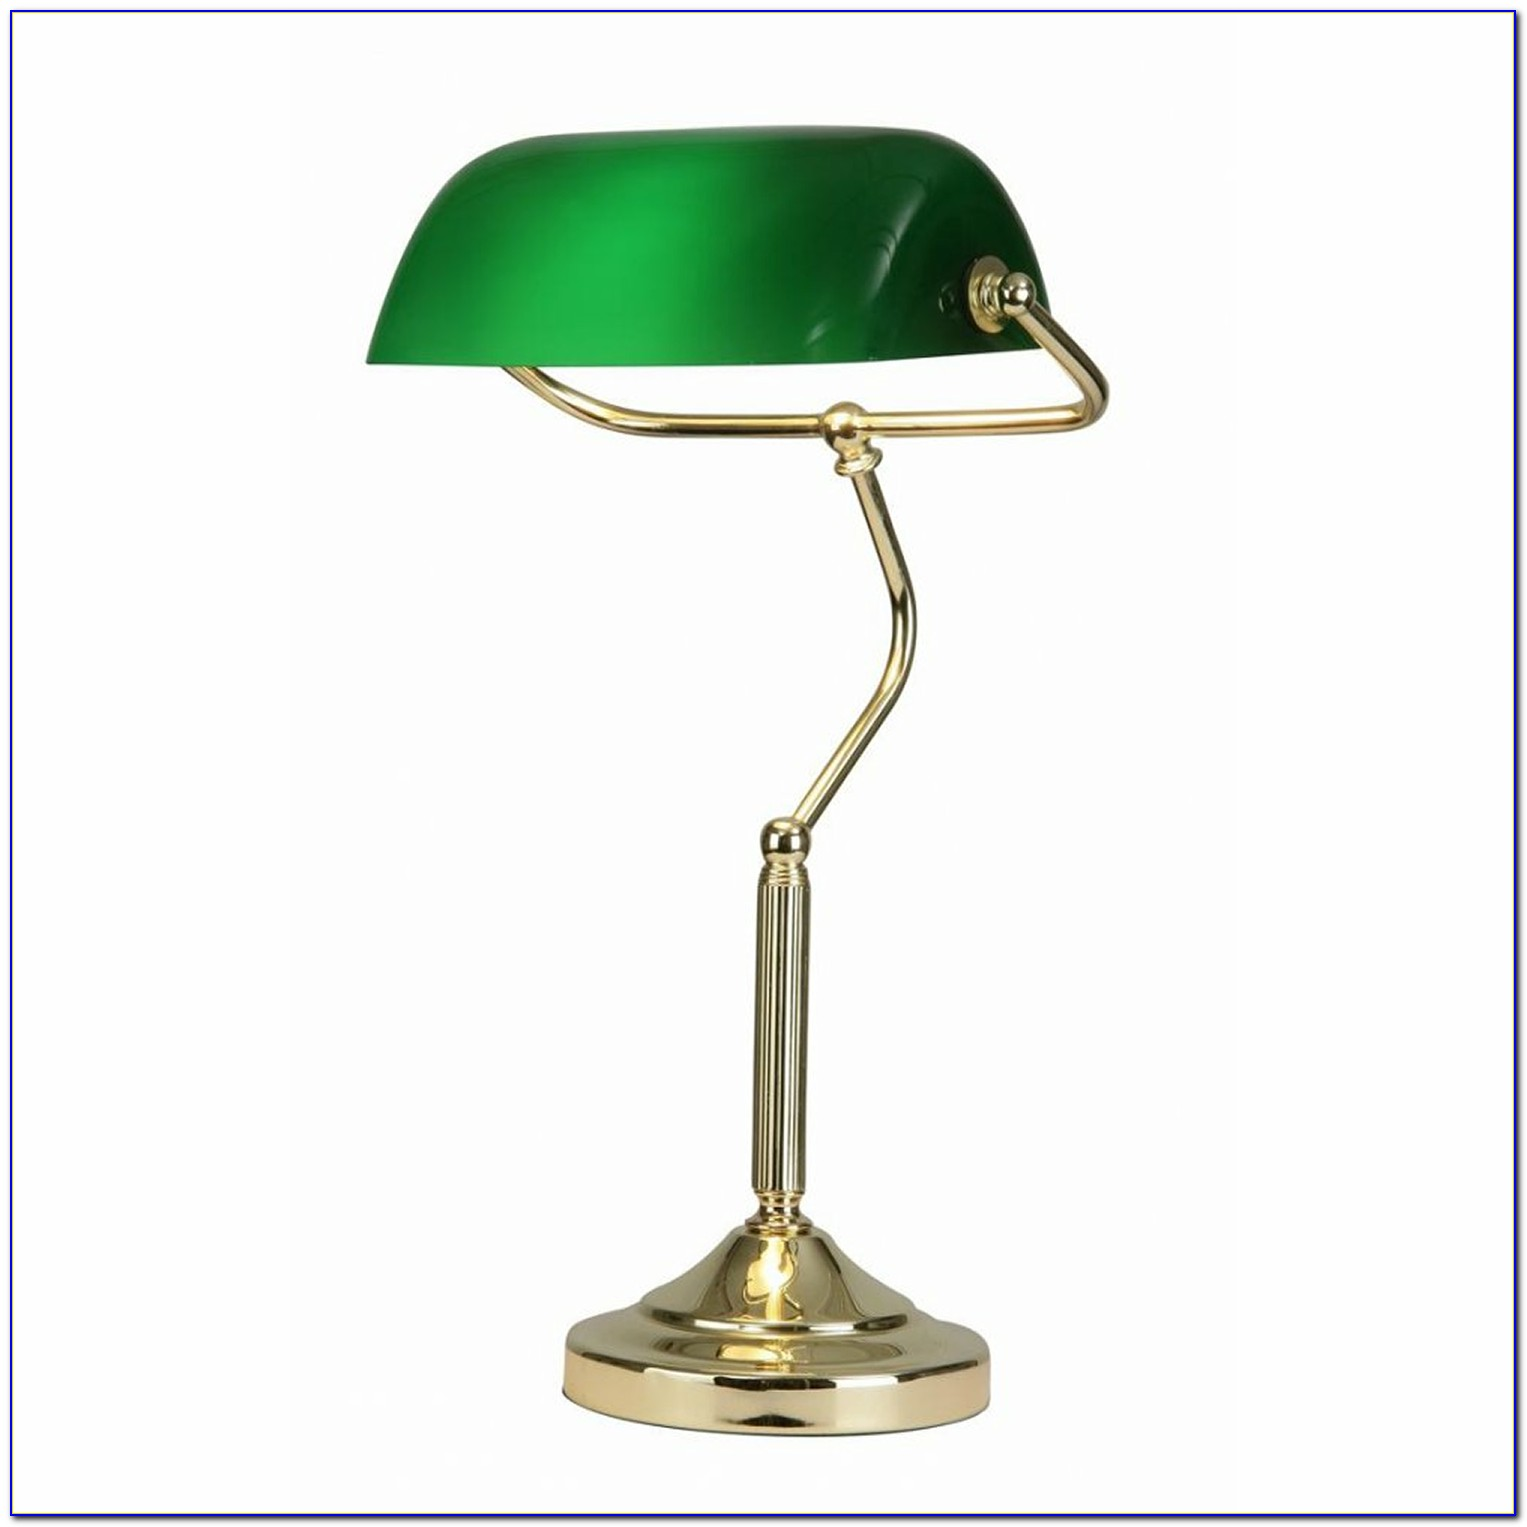 Classic Green Bankers Table Lamp